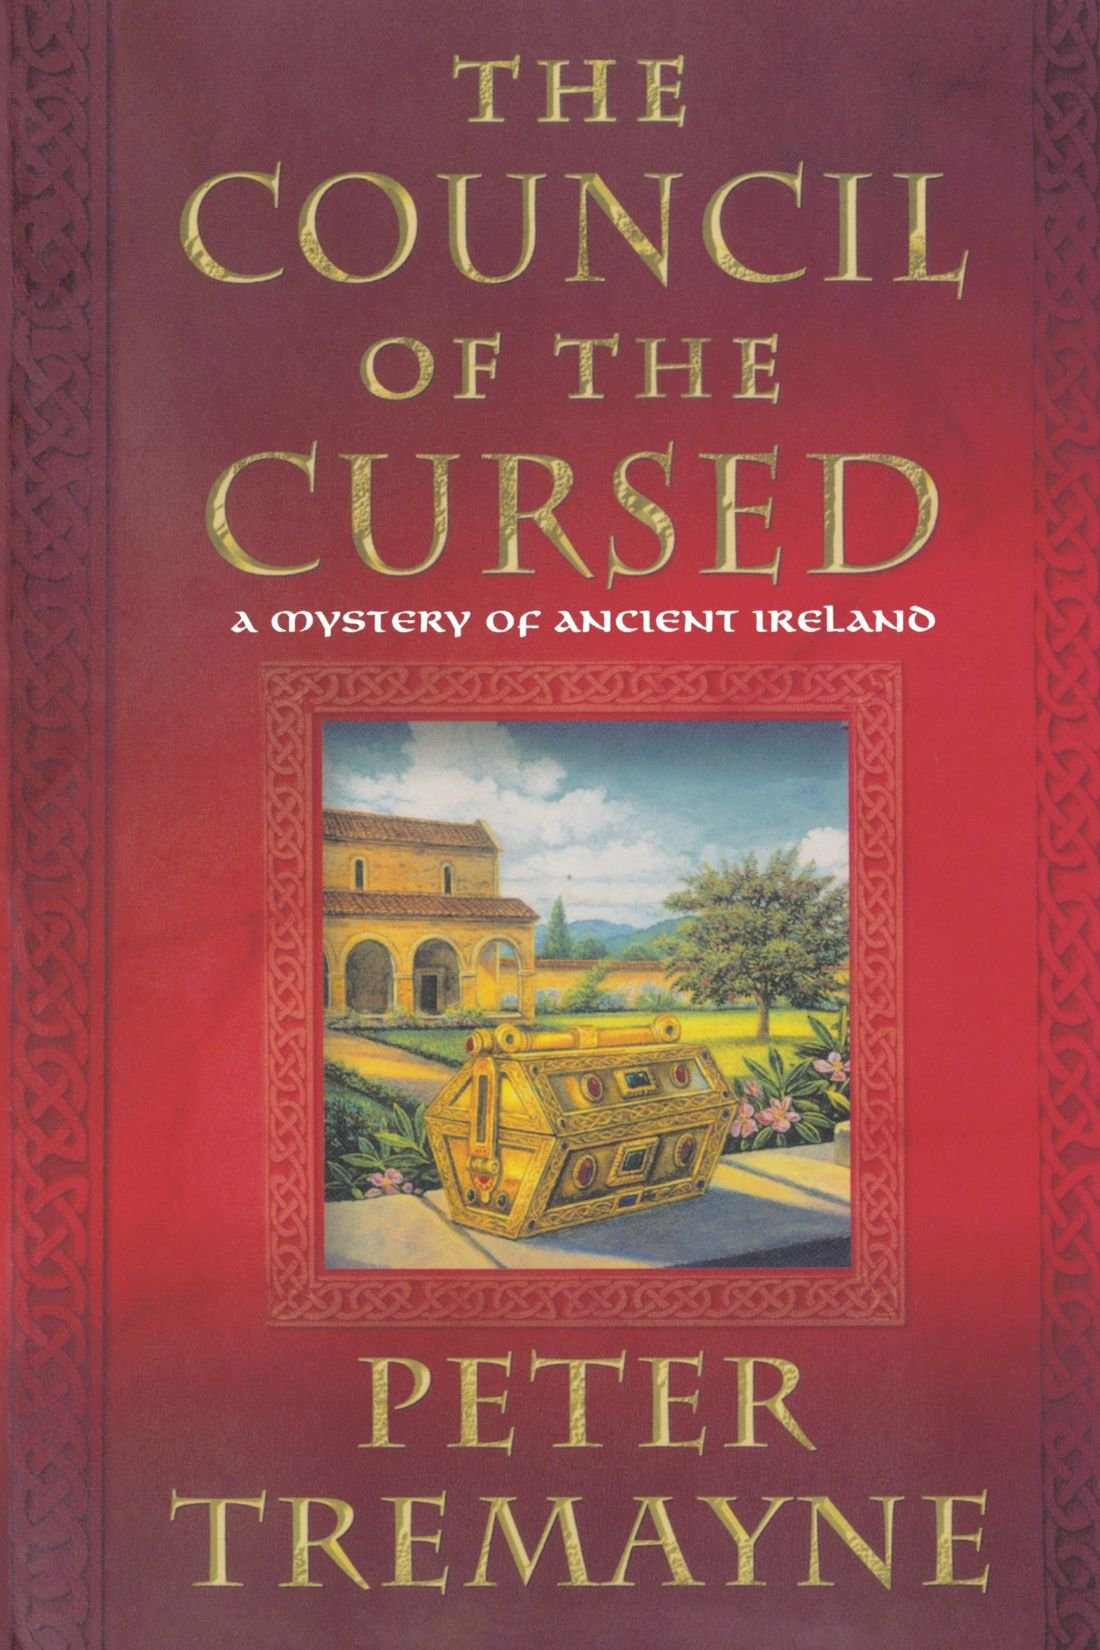 Download The Council of the Cursed: A Mystery of Ancient Ireland (Mysteries of Ancient Ireland) PDF